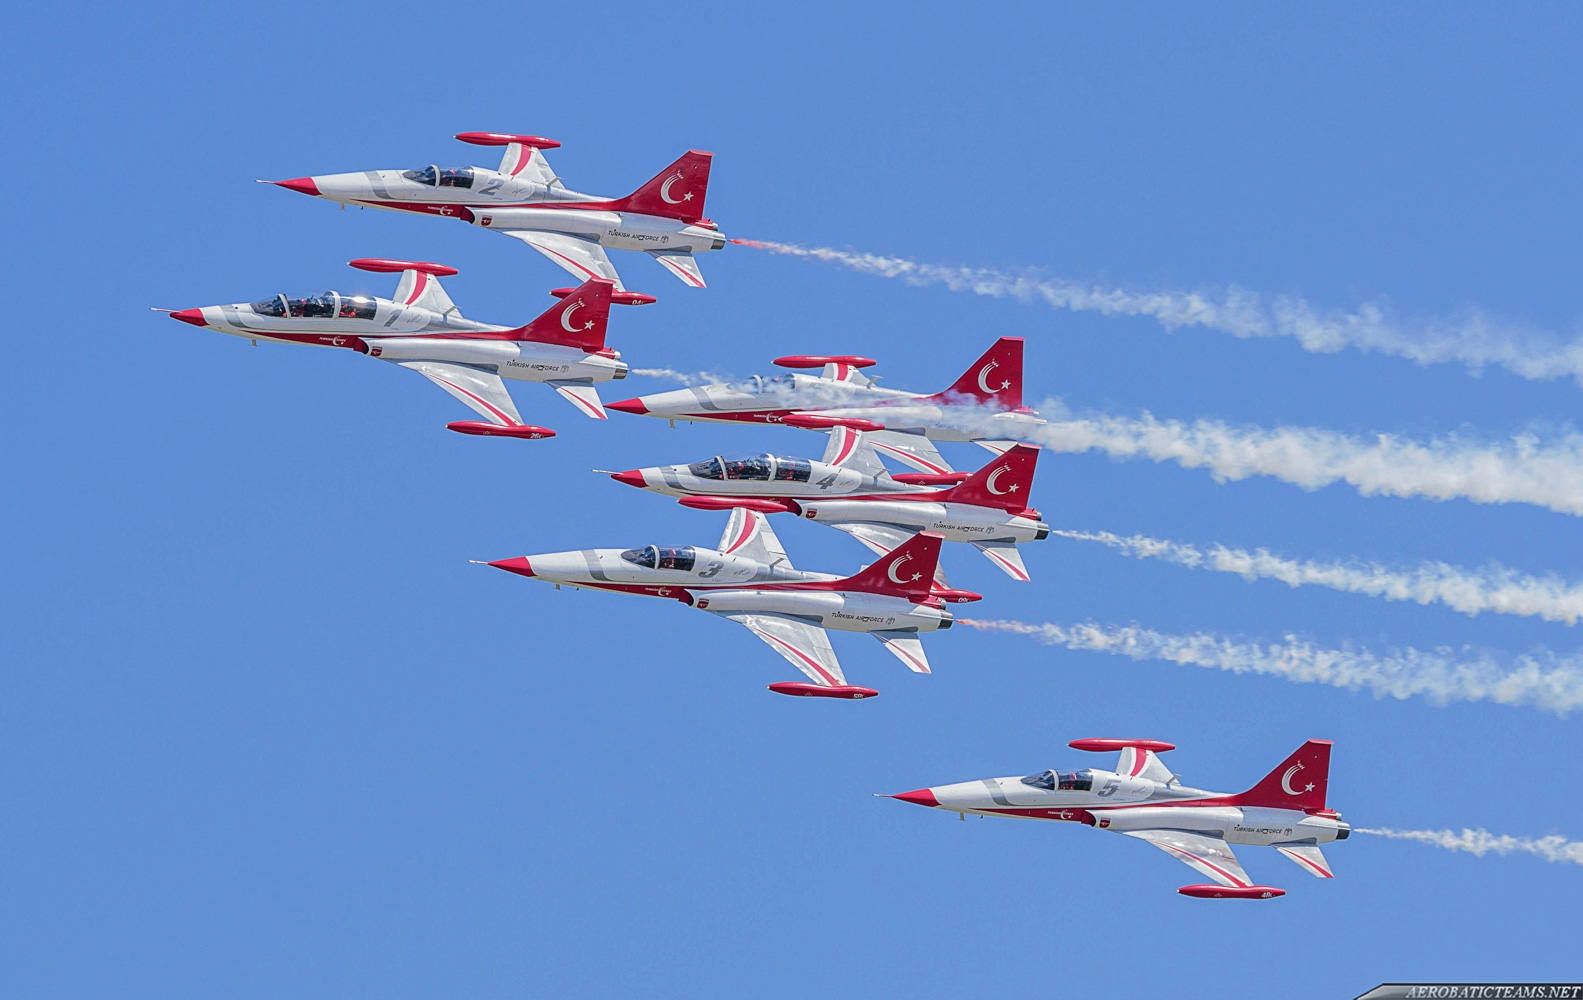 Turkish Stars cancelled AirPower16 participation